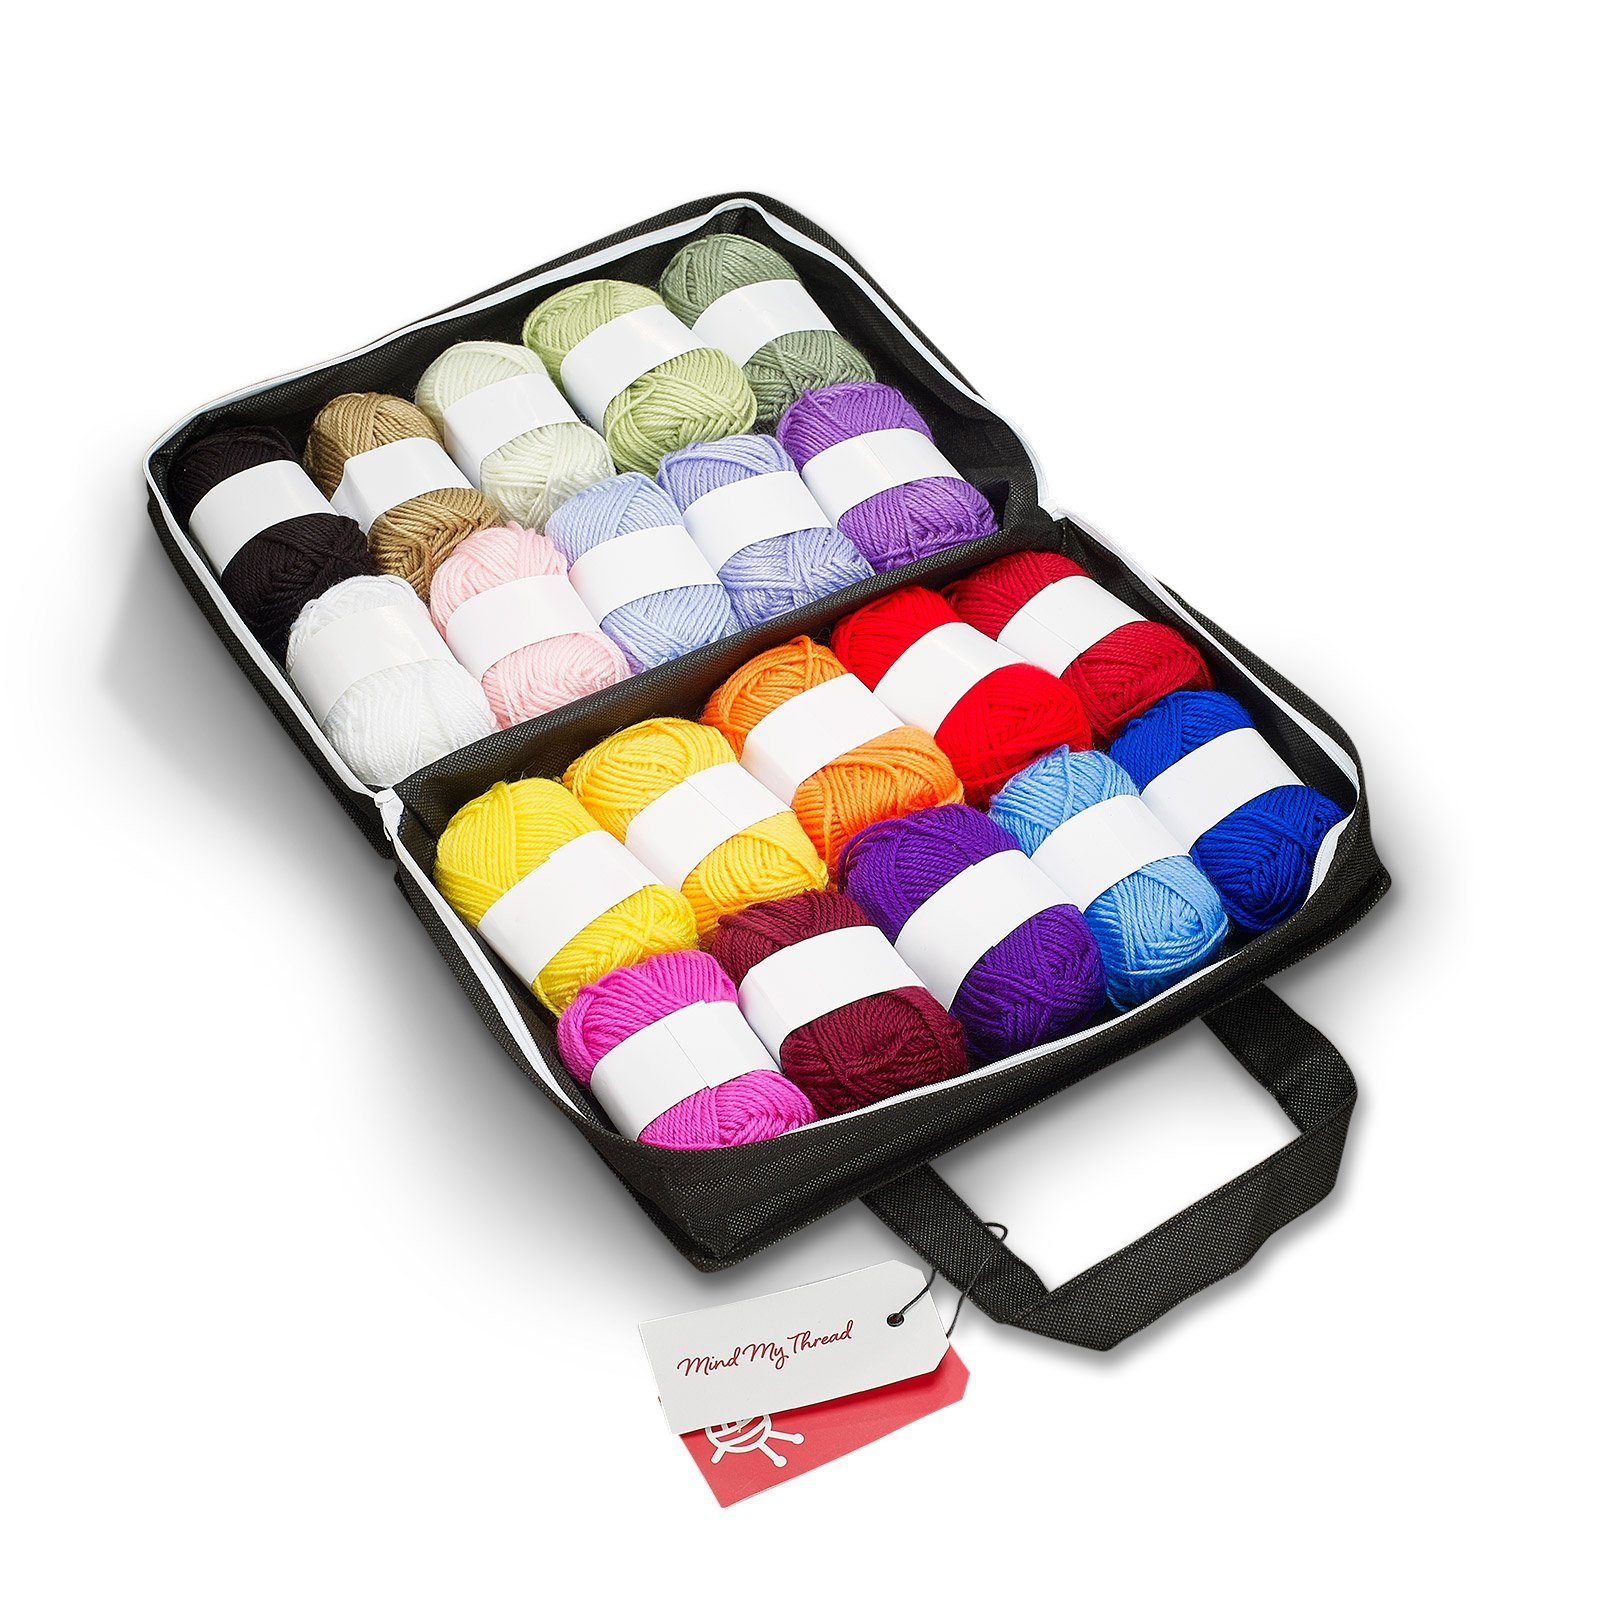 Mind My Thread 20 Skeins Acrylic Yarns For Crochet Knitting Craft Kit | 1,093 Yards | 20 Color Set with Reusable Yarn Storage Craft Bag & Bonus Crochet Hook + 'How to' Book for Beginners             by Mind My Thread (Image #1)